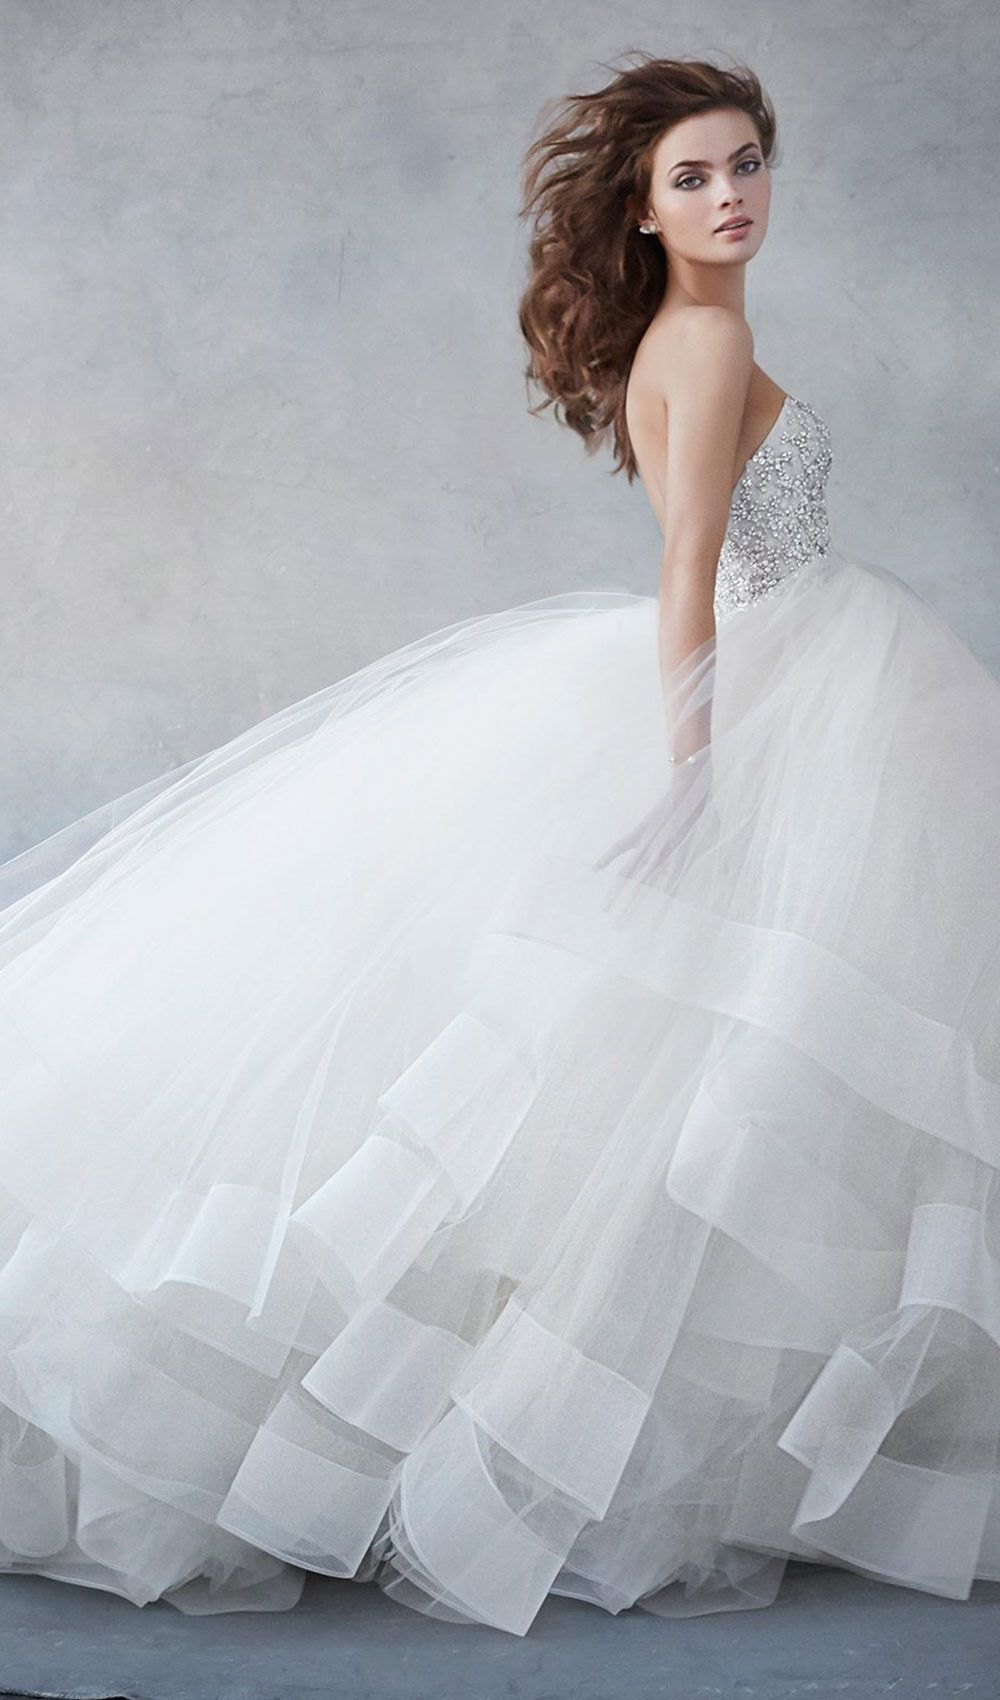 Stun guests with this champagne tulle bridal ball gown from Lazaro! The pearl and rhinestone encrusted bodice is too gorgeous for words. Available at Schaffer's in Des Moines.   Wedding Dress Info: Lazaro - STYLE 3608